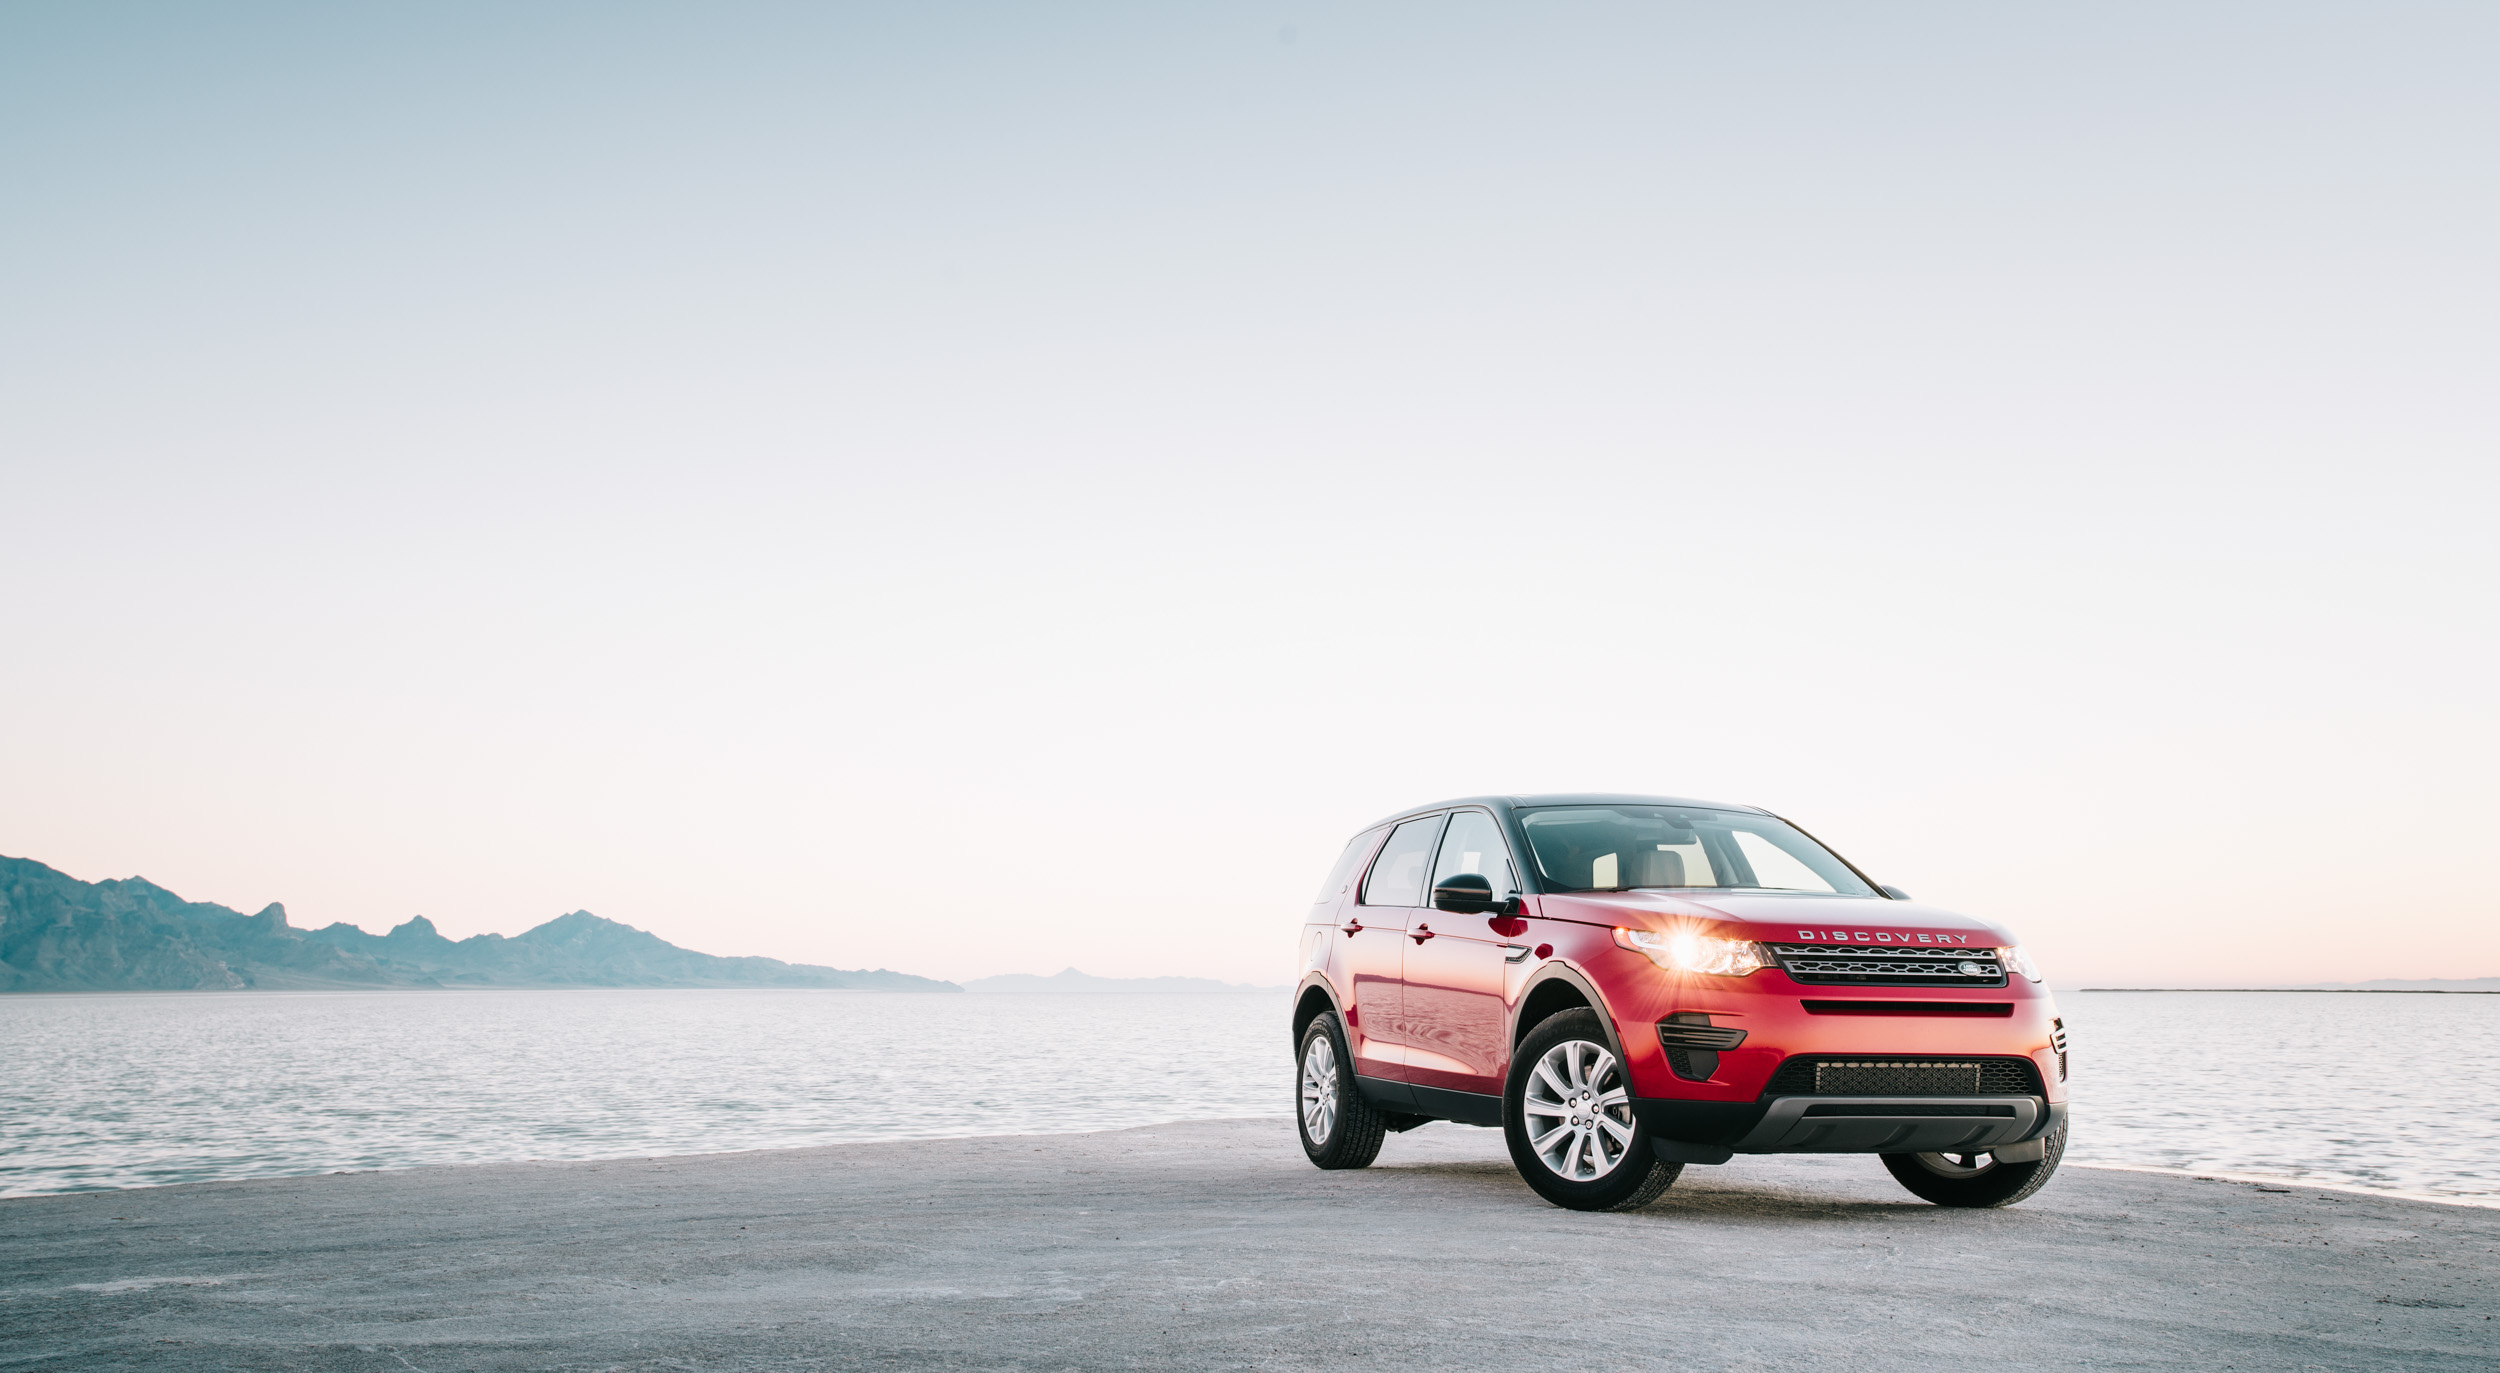 A red Land Rover Discovery on the Great Salt Flats in Utah